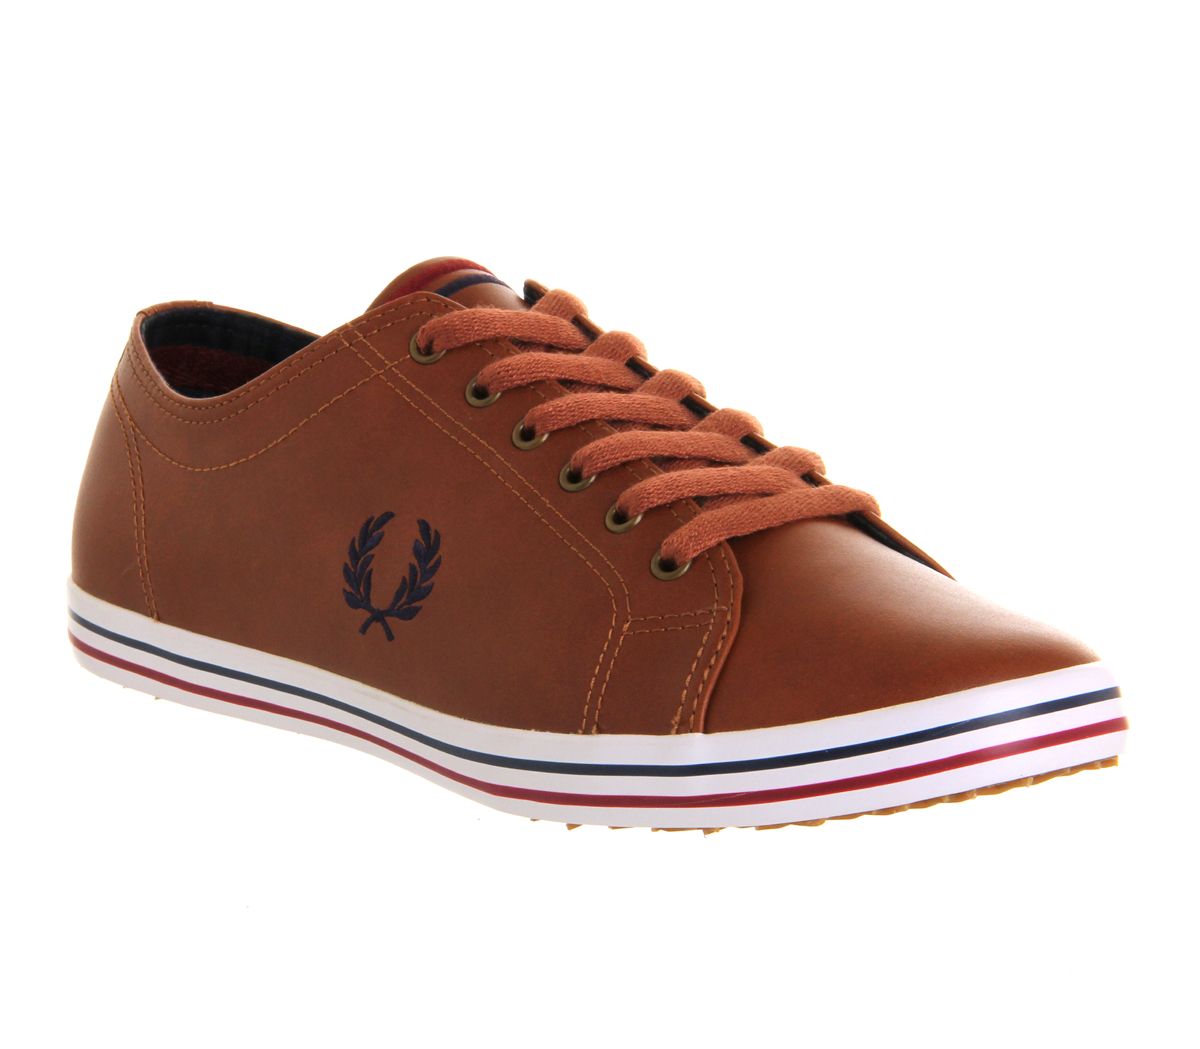 fred perry kingston leather brown trainers shoes ebay. Black Bedroom Furniture Sets. Home Design Ideas